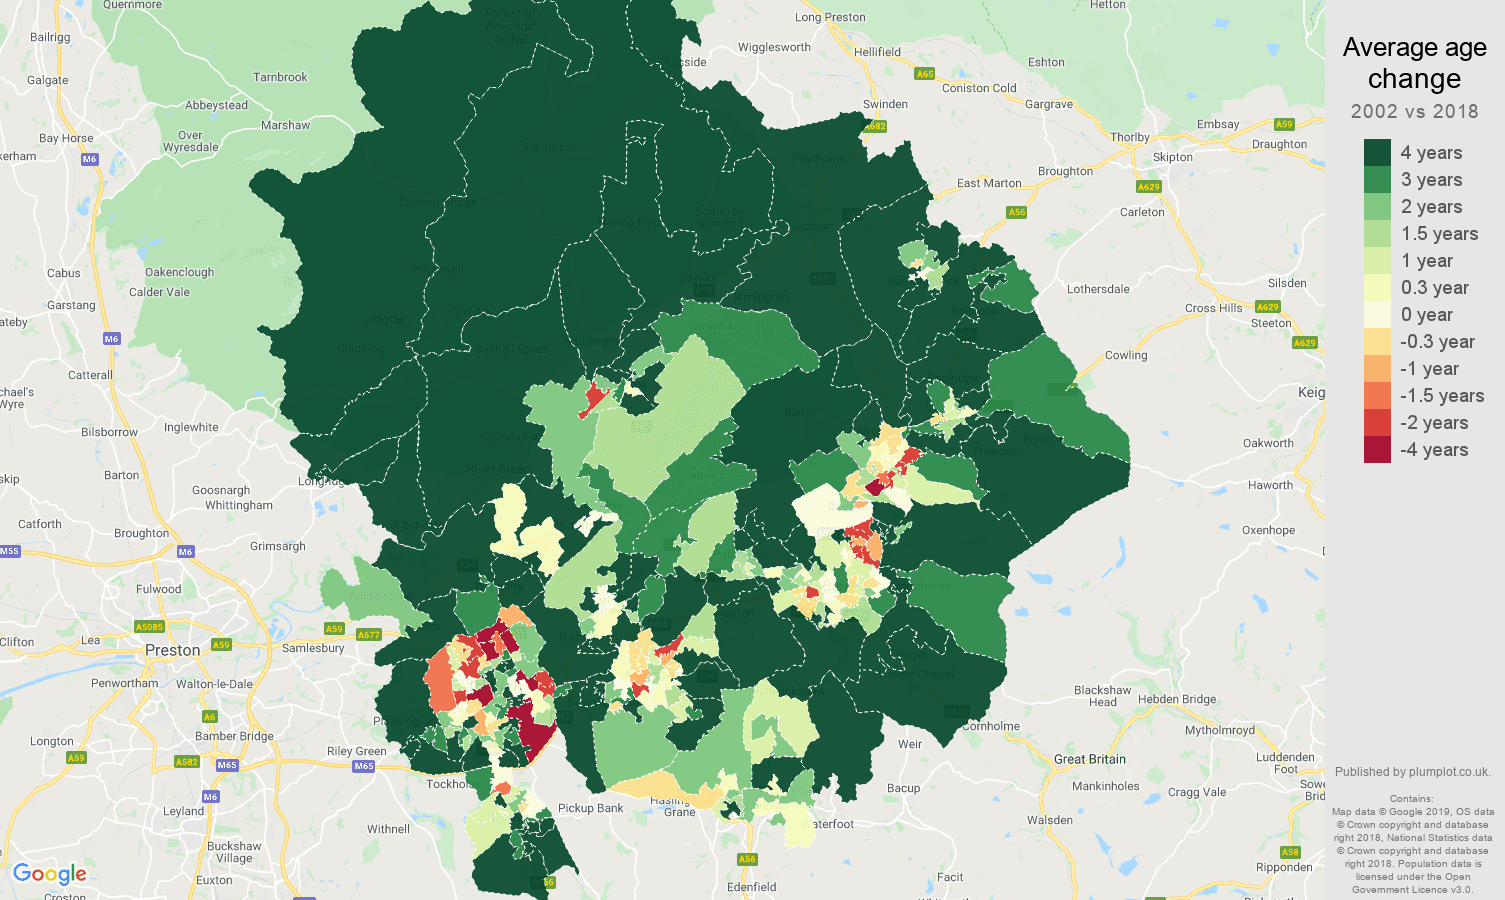 Blackburn average age change map